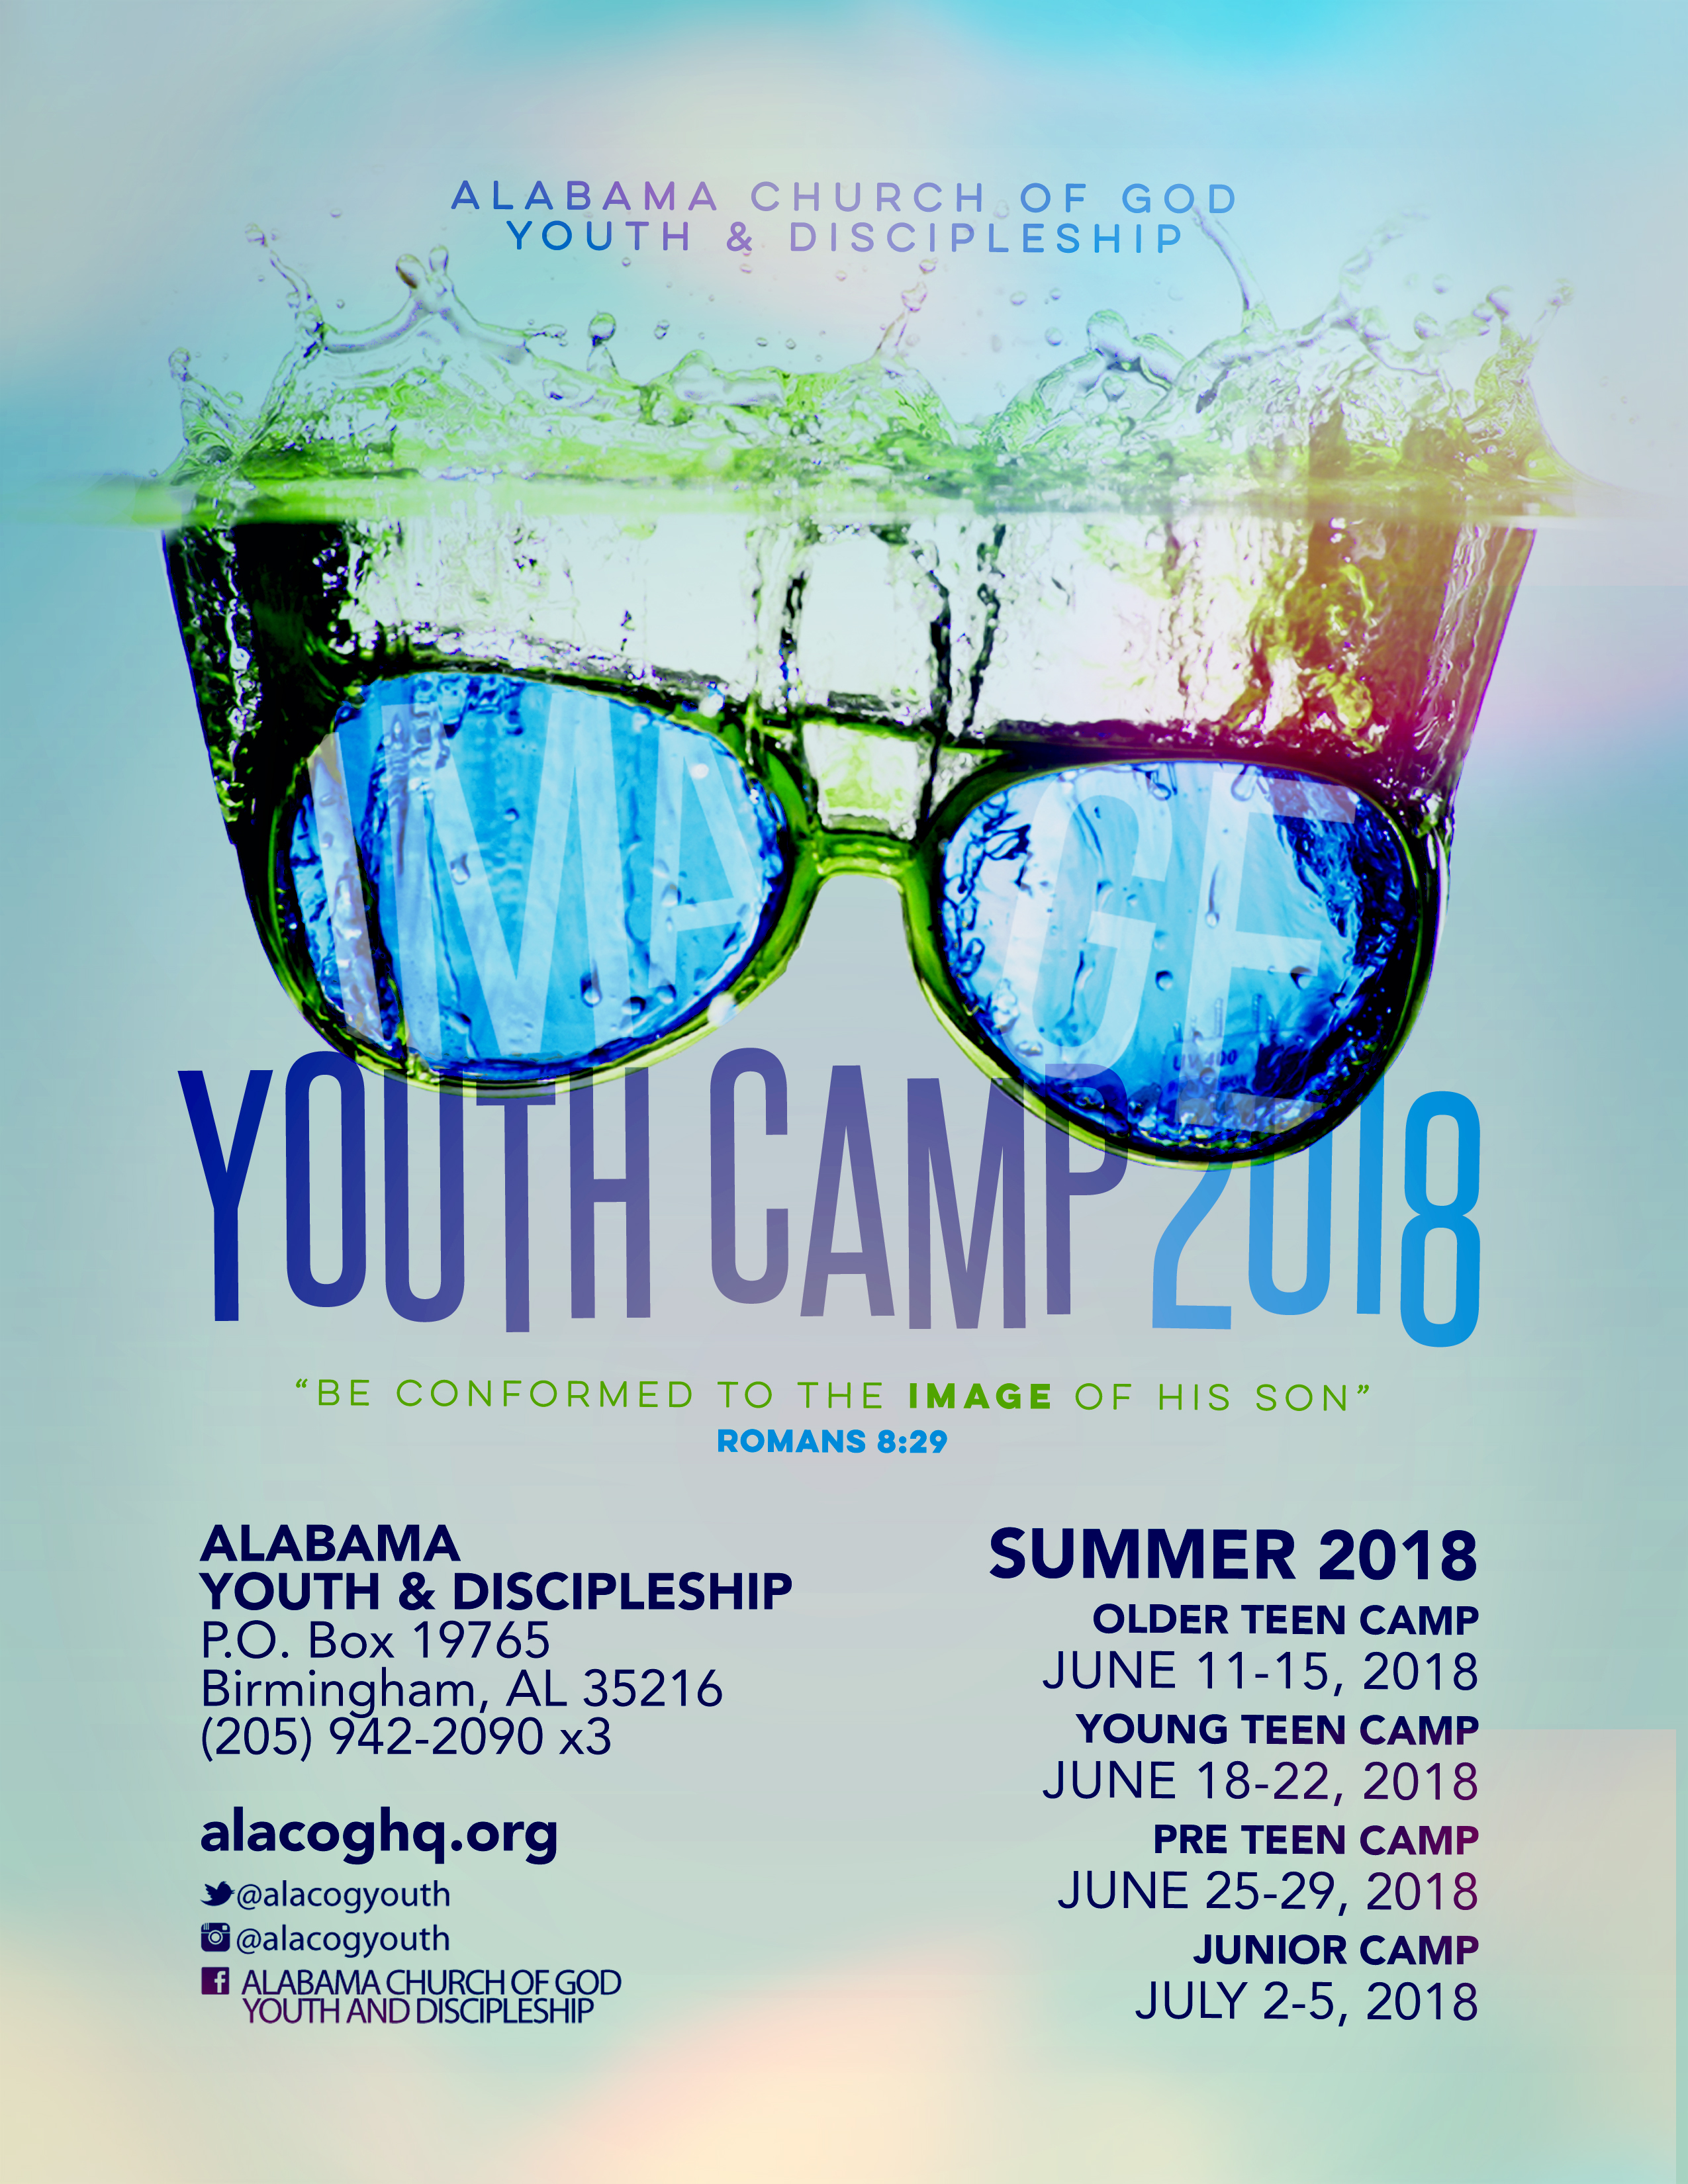 Youth and Discipleship – Alabama Church of God